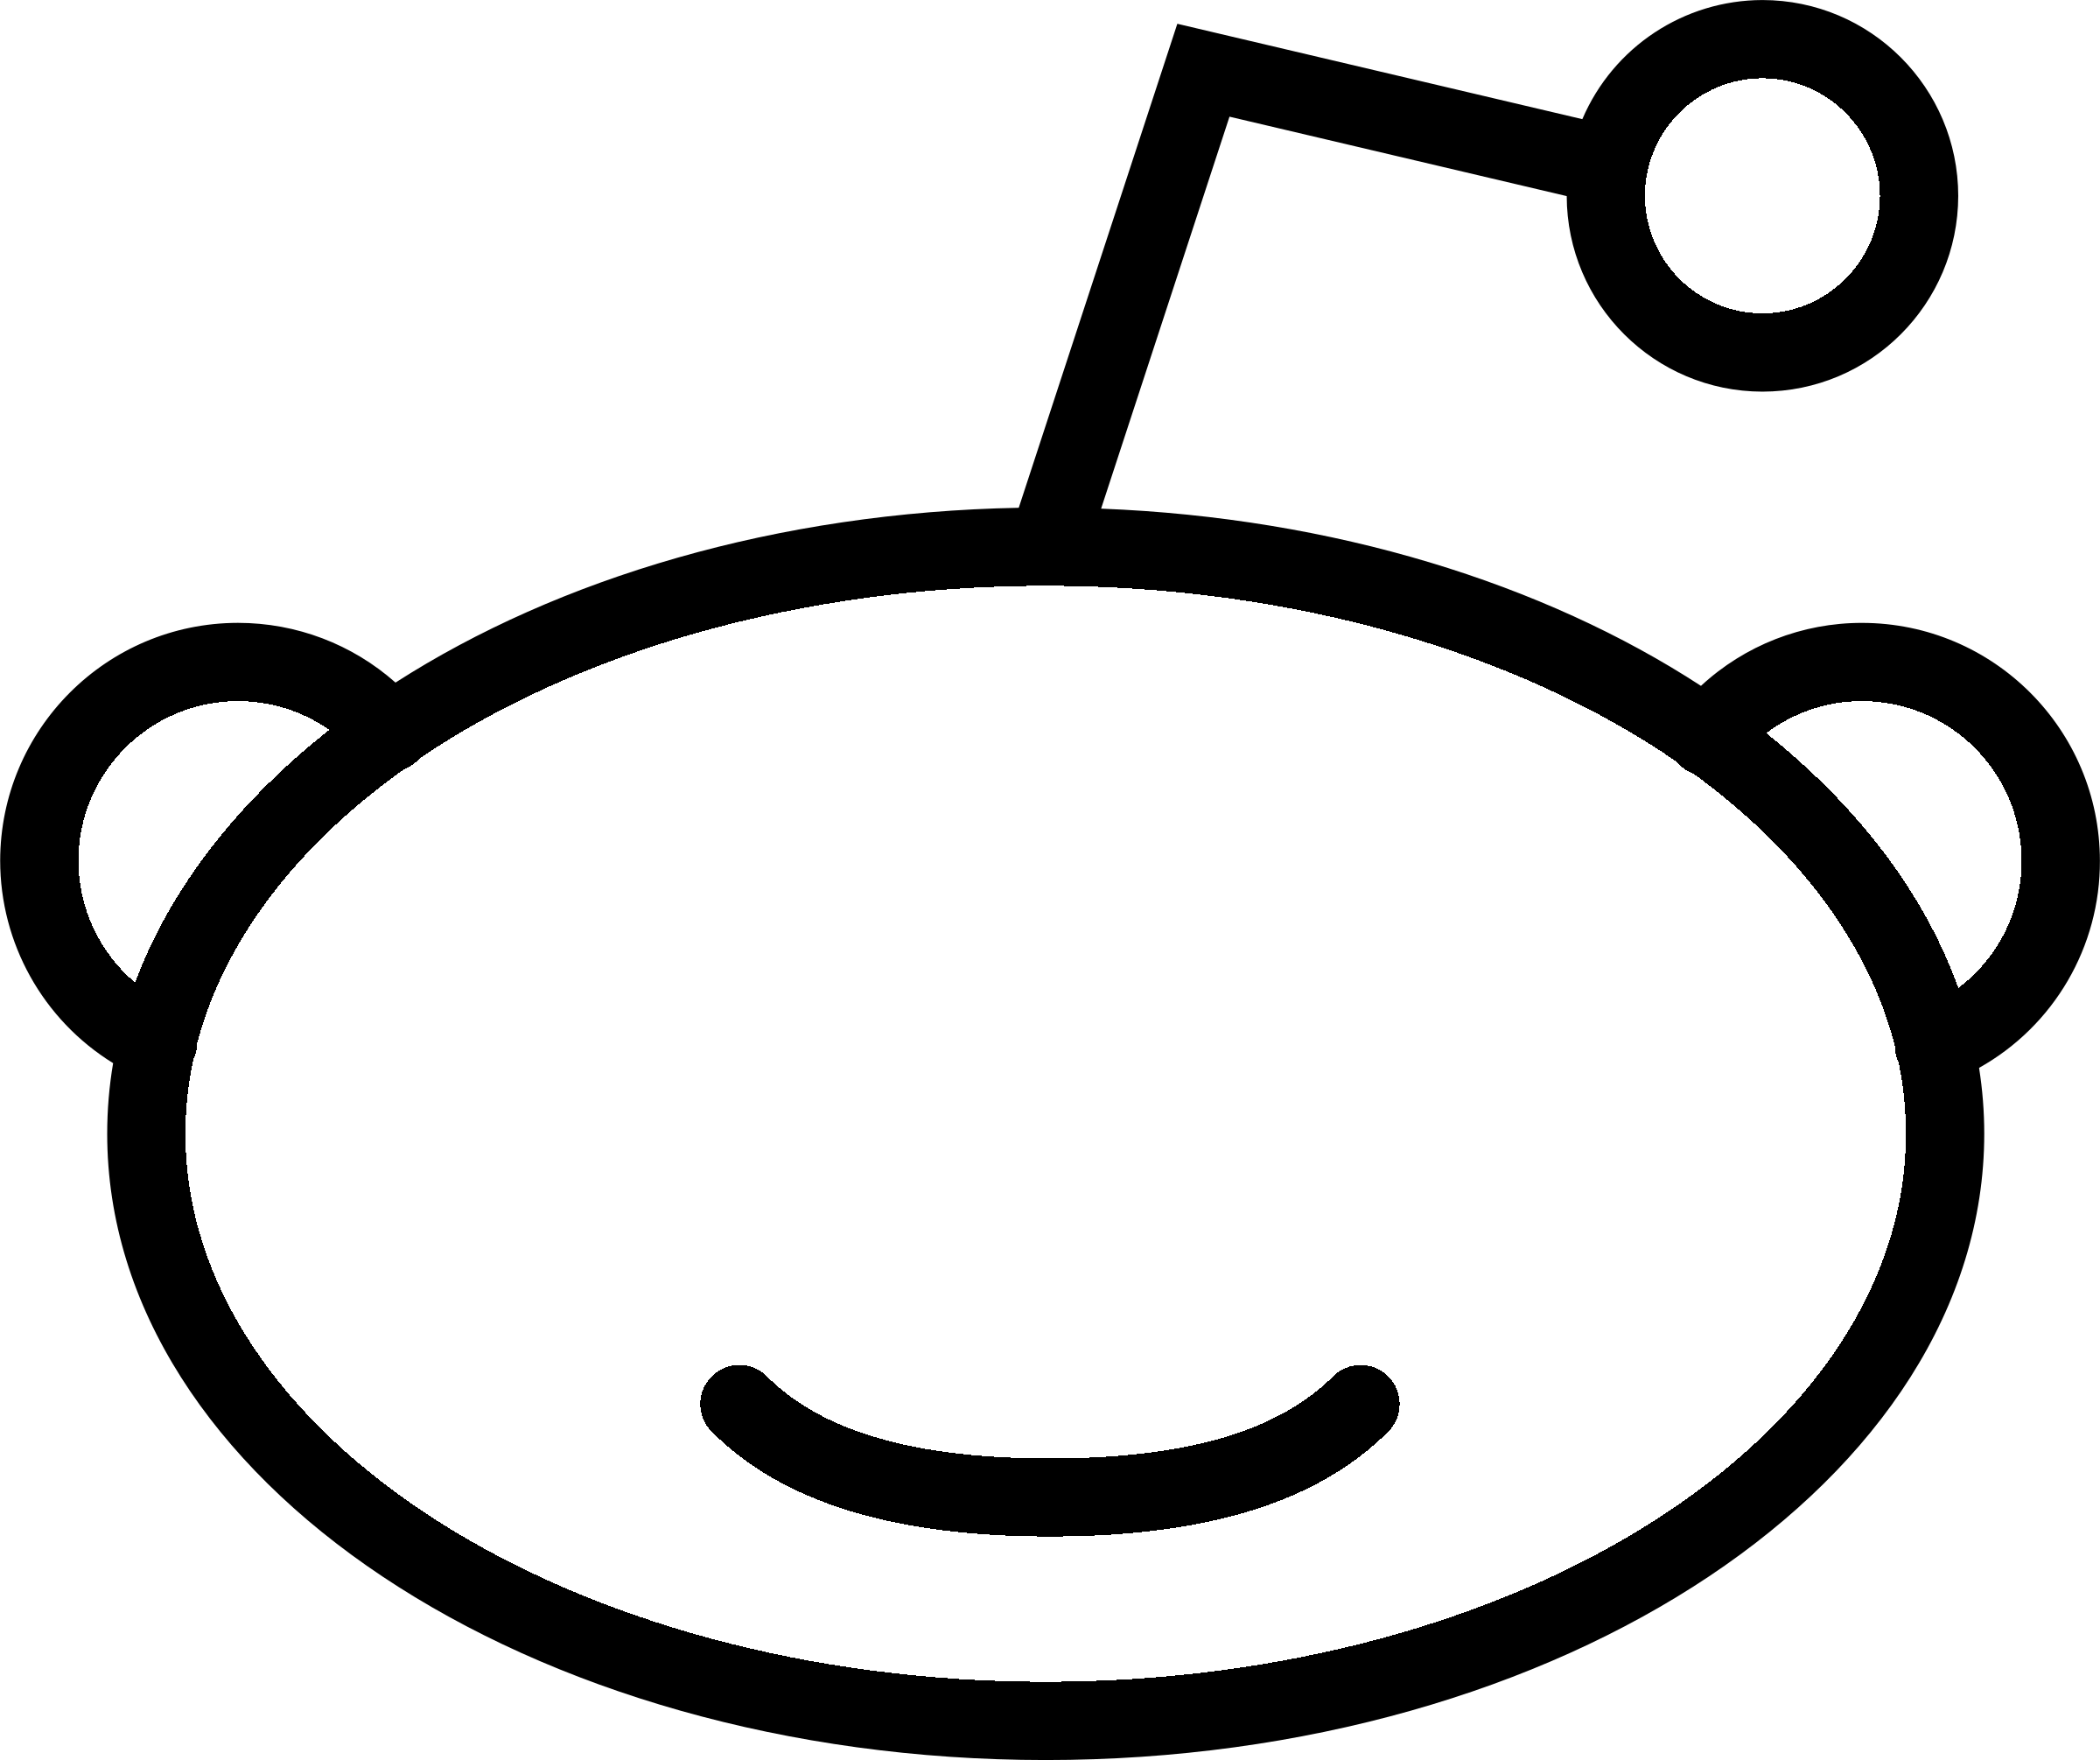 Reddit icon logo black and white